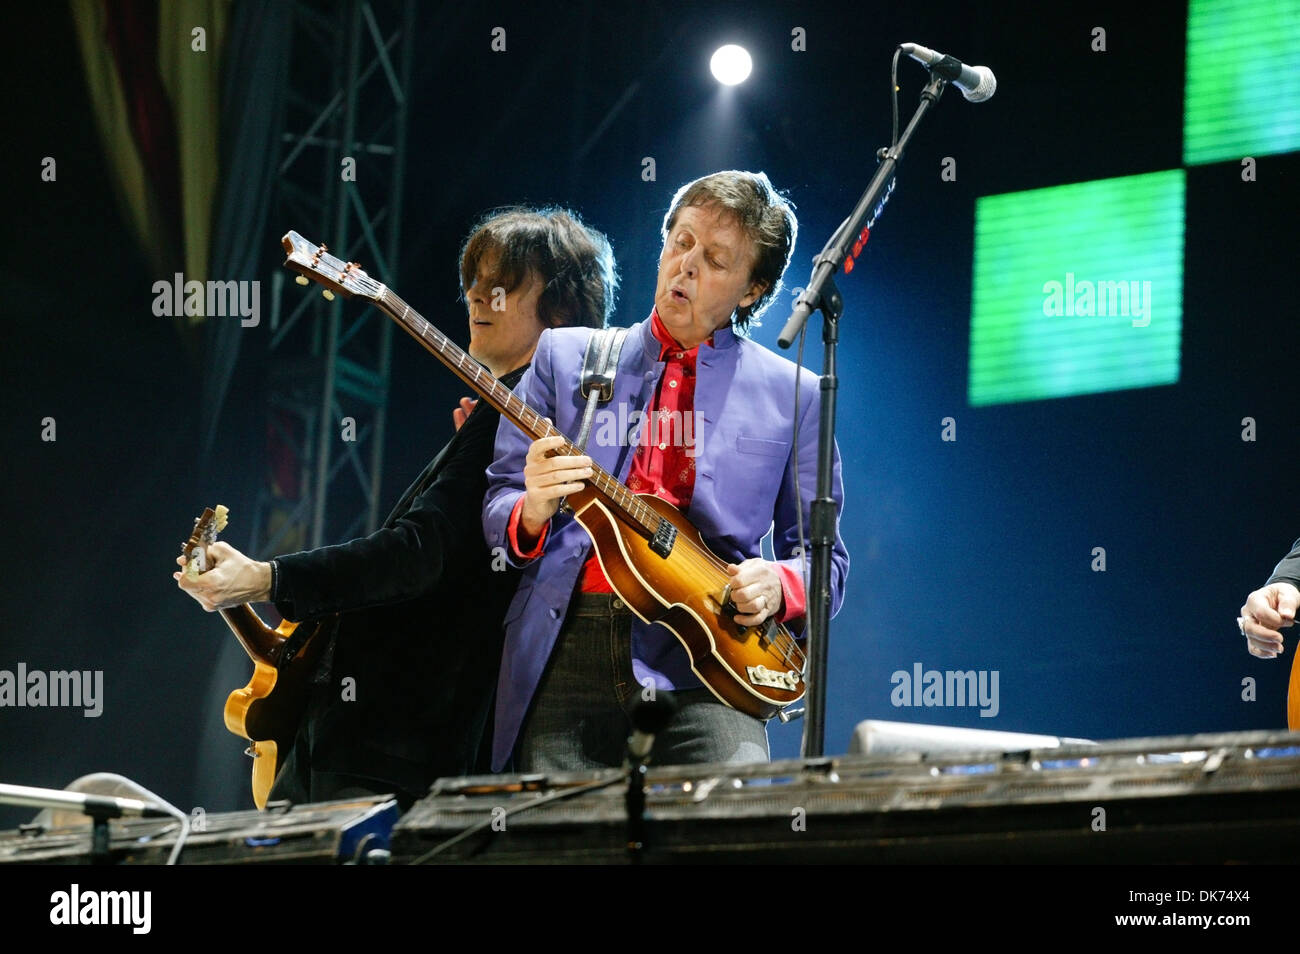 Sir Paul McCartney performing on the Pyramid stage at the Glastonbury Festival 2004. - Stock Image